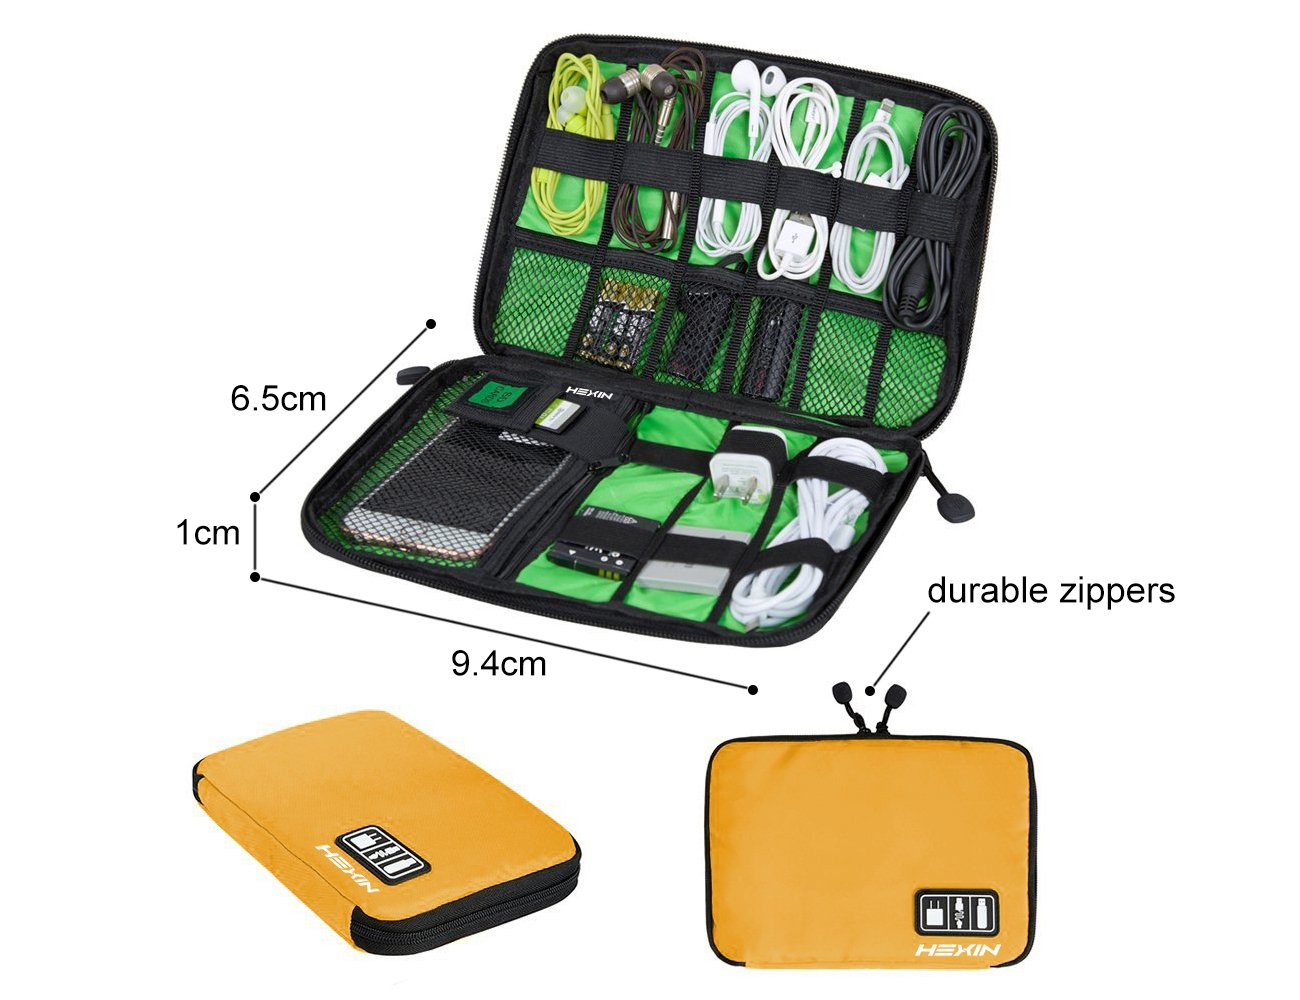 Portable Double Layer Travel Gear Cable Organizer Electonics Bags (Yellow)